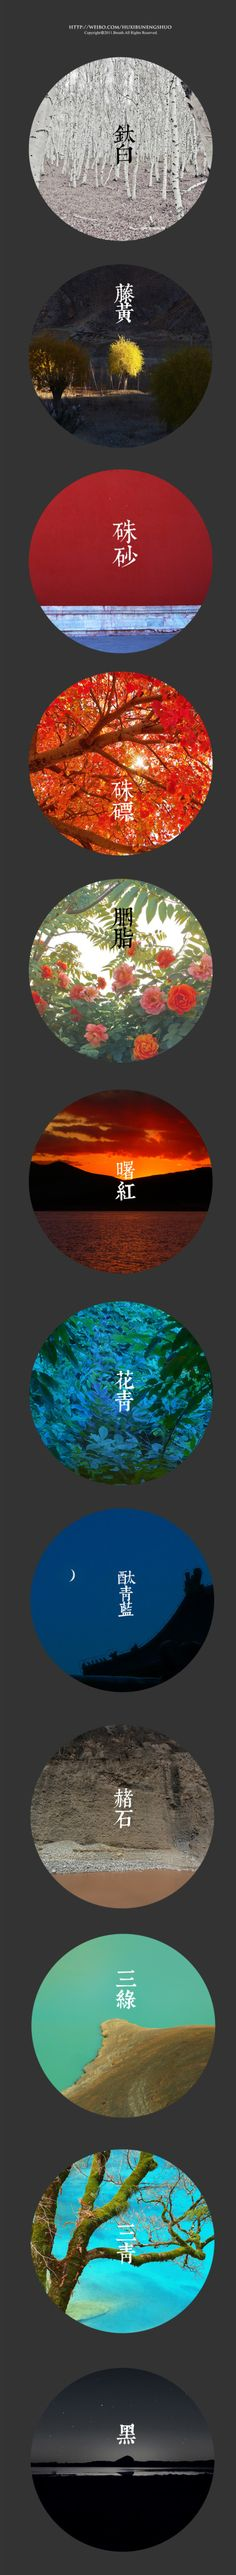 colors (in traditional Chinese painting) with beautiful names